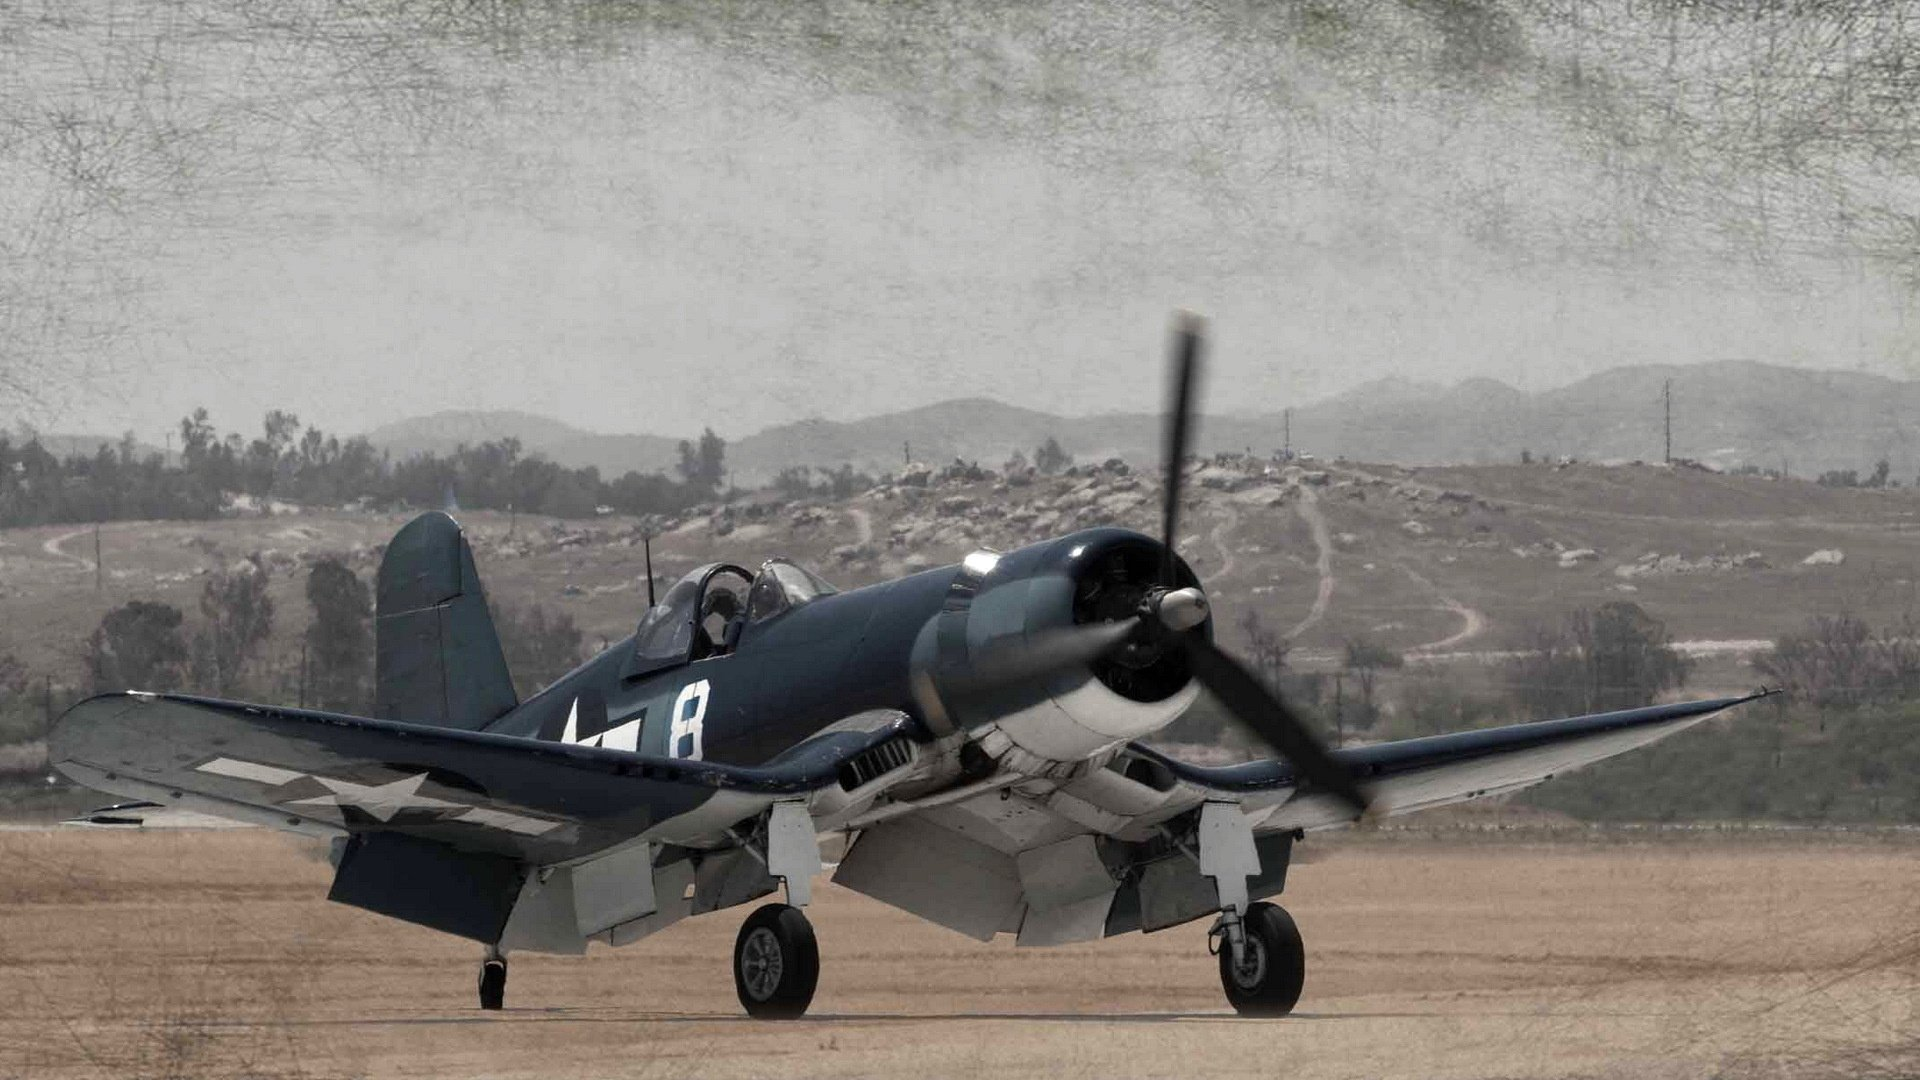 Airbus Iphone Wallpaper Vought F4u Corsair Full Hd Wallpaper And Background Image